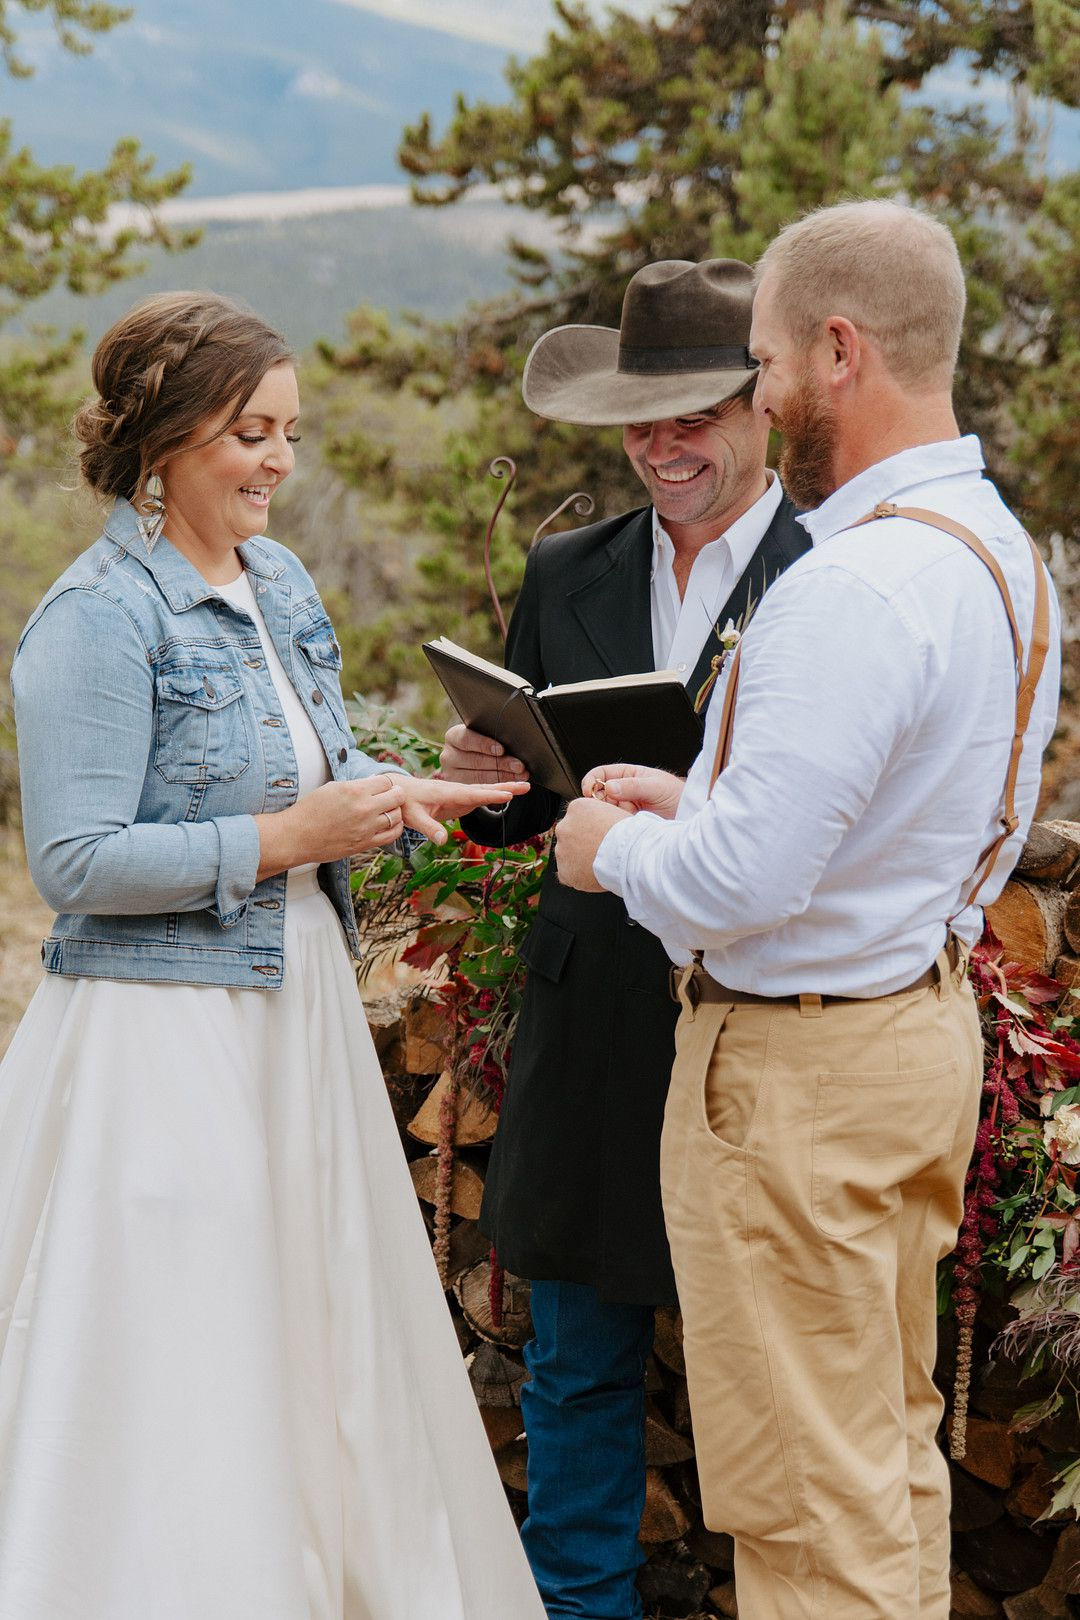 Bride and groom putting on rings at mountain elopement ceremony